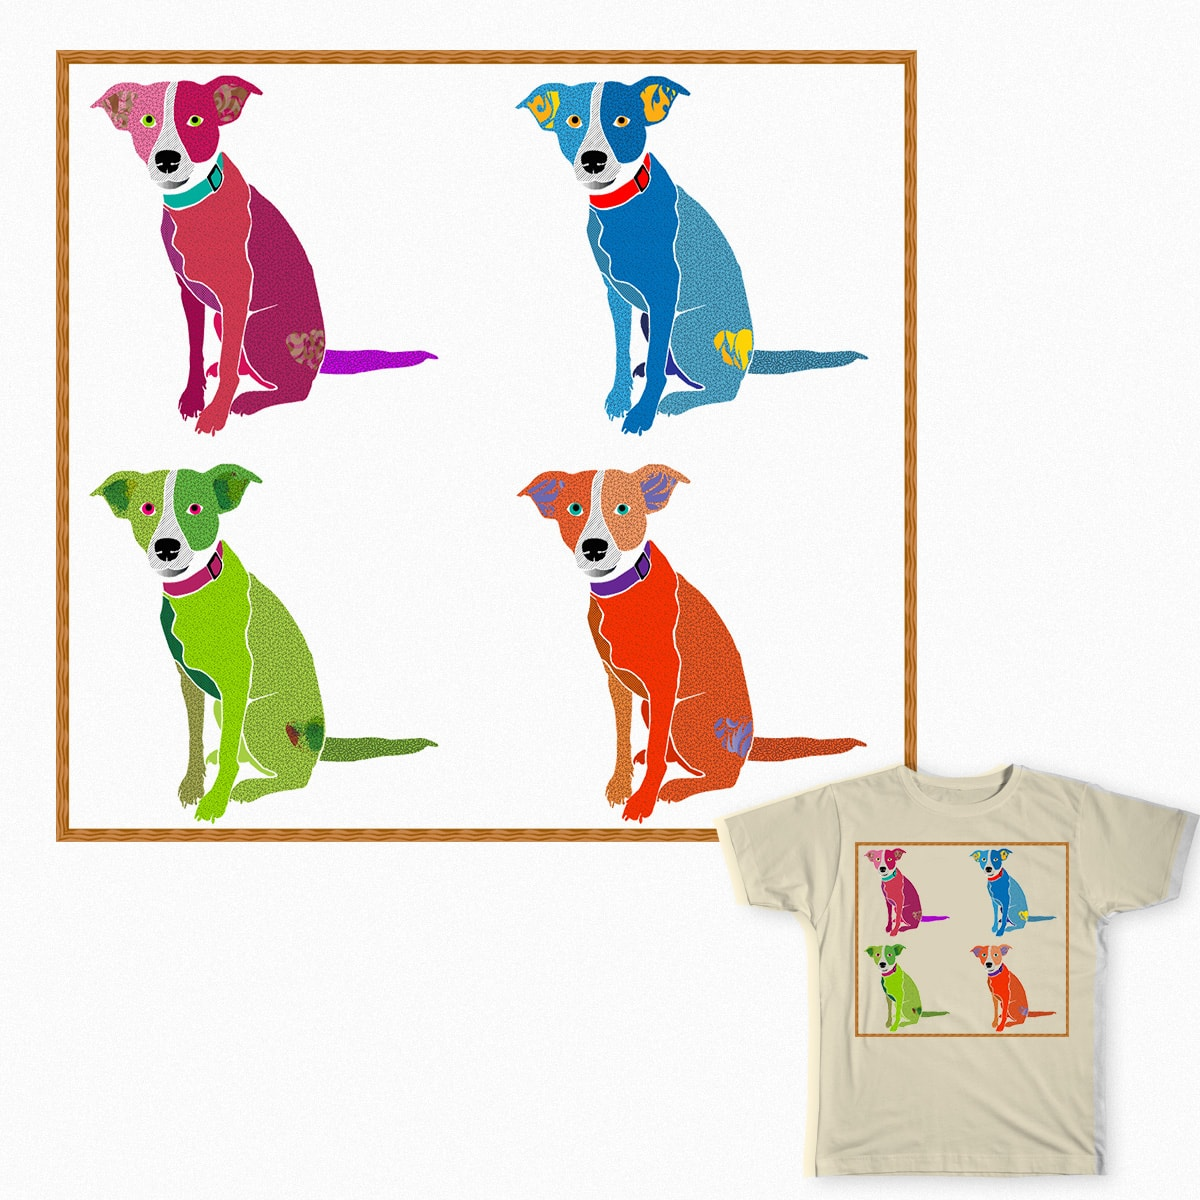 Pop Art Pipers by Kelly.Boyer.Brookshire on Threadless